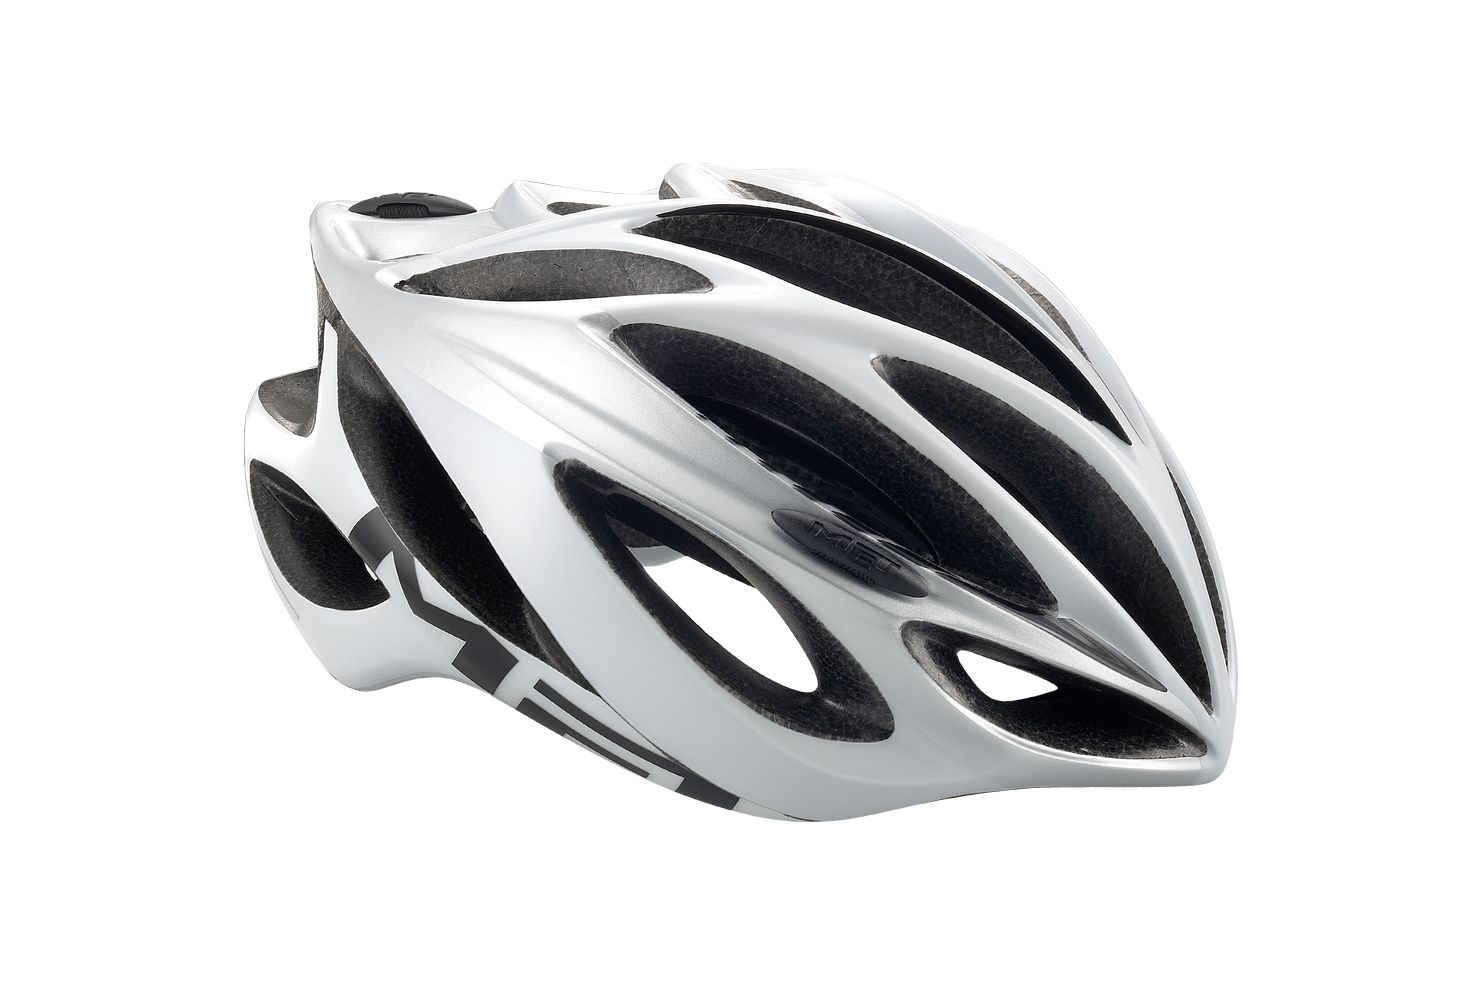 Casque MET Inferno UL blanc/silver - L 58-61